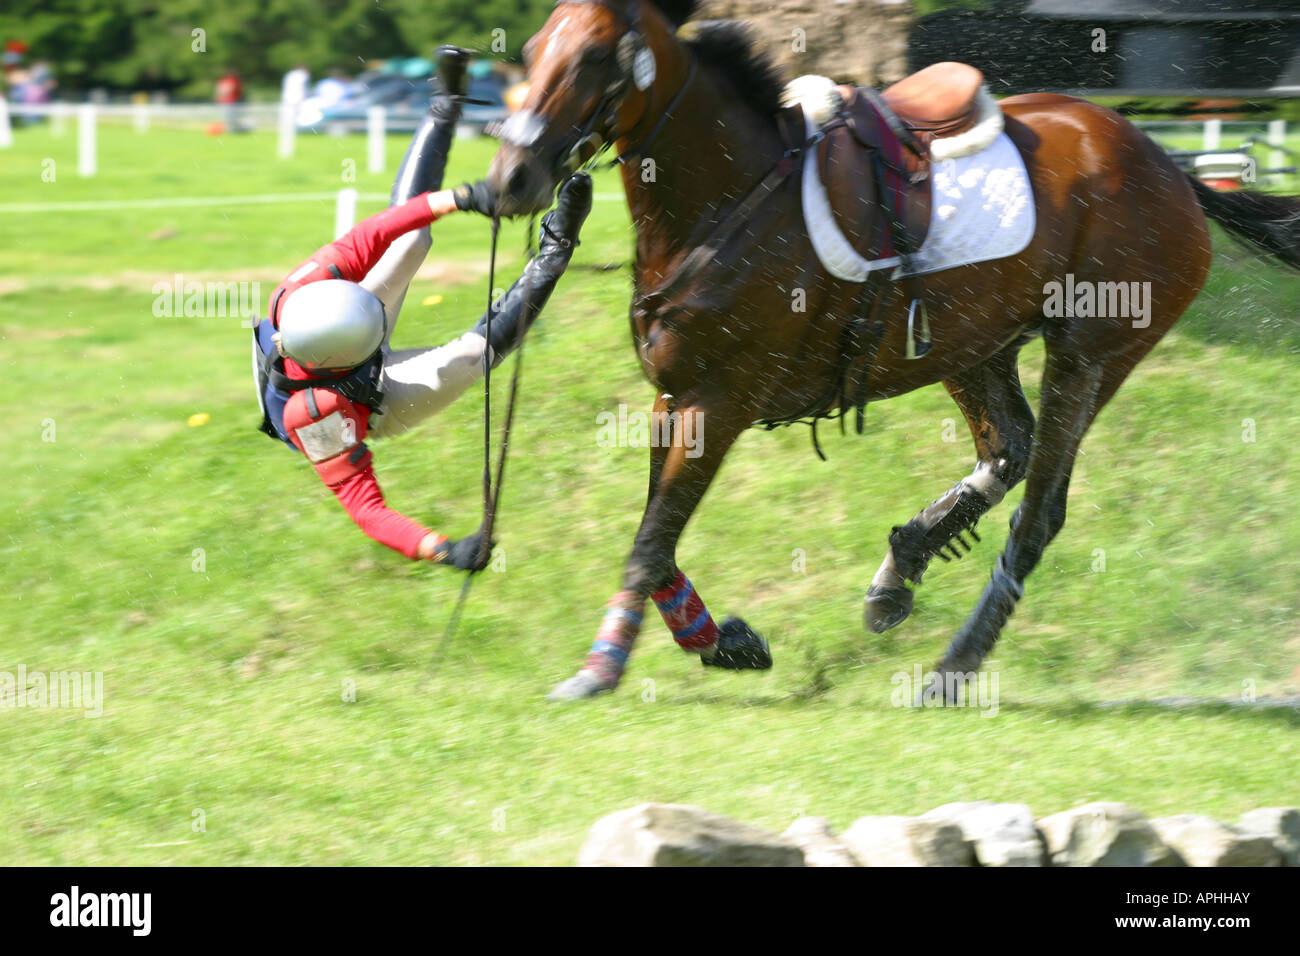 https://c8.alamy.com/comp/APHHAY/cross-country-rider-falling-at-fence-APHHAY.jpg